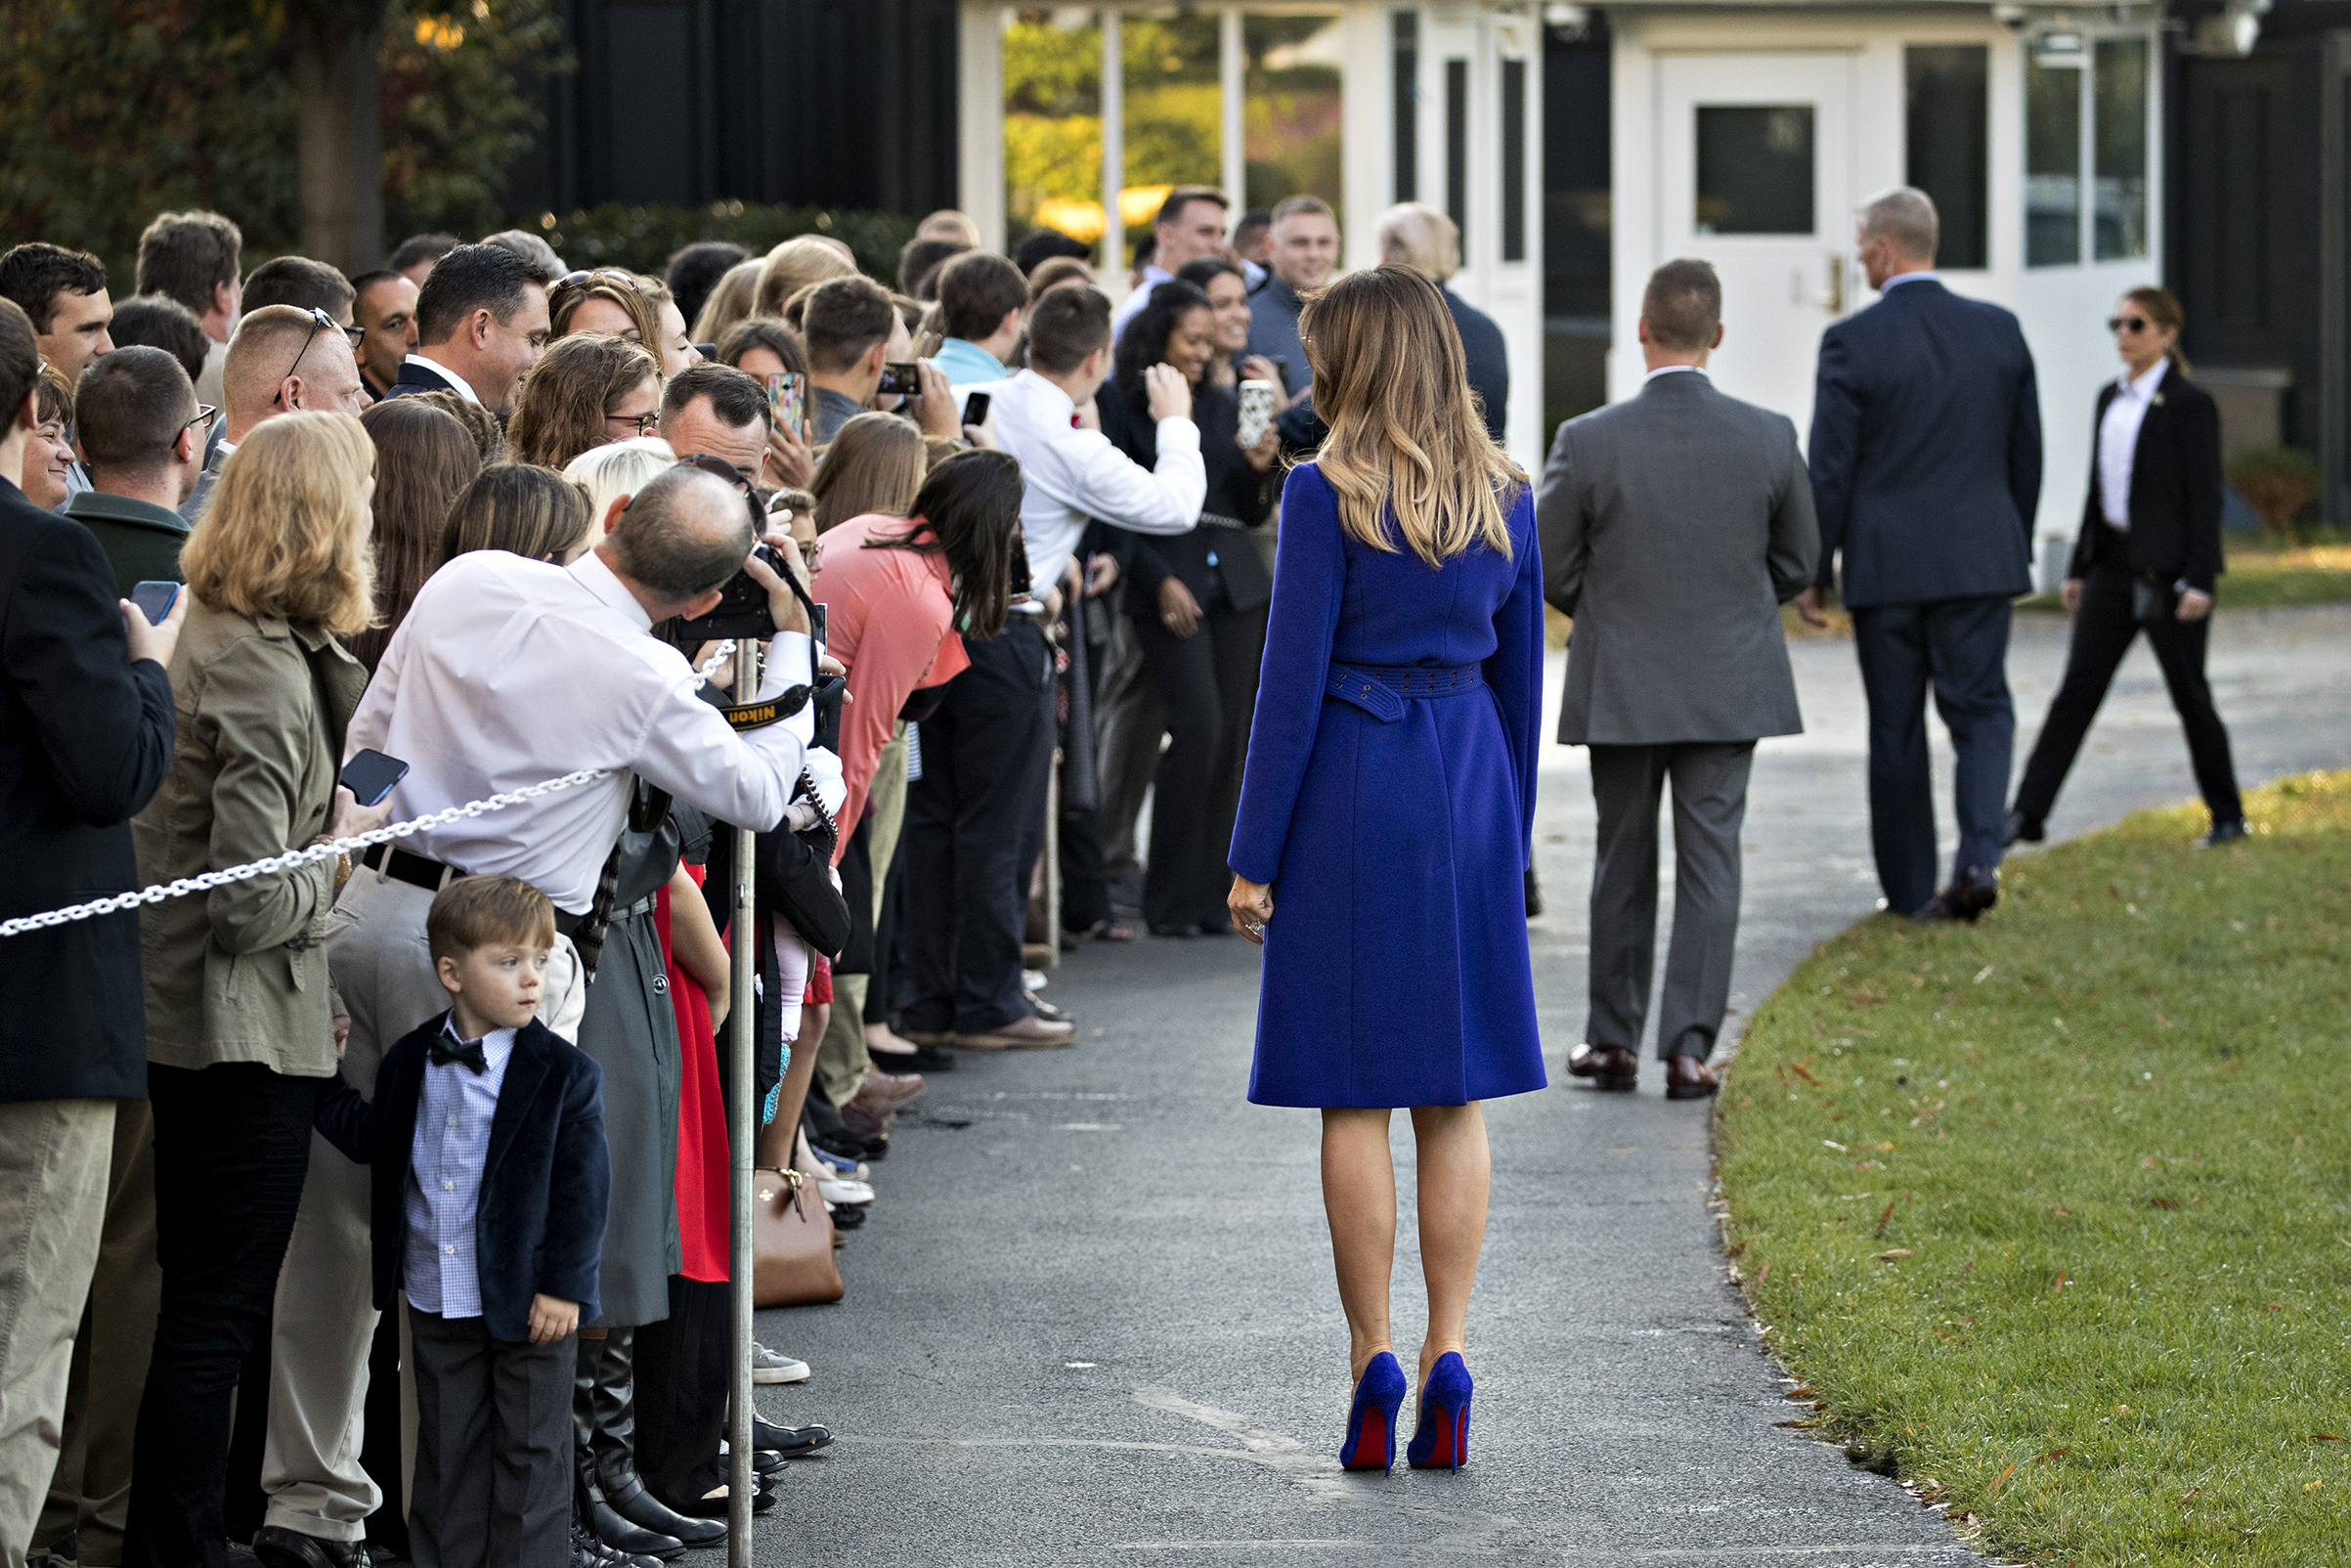 First Lady Melania Trump wearing a cobalt Pucci coat and matching Christian Louboutin shoes stands while greeting visitors before boarding Marine One on the South Lawn of the White House in Washington, on Nov. 3, 2017.